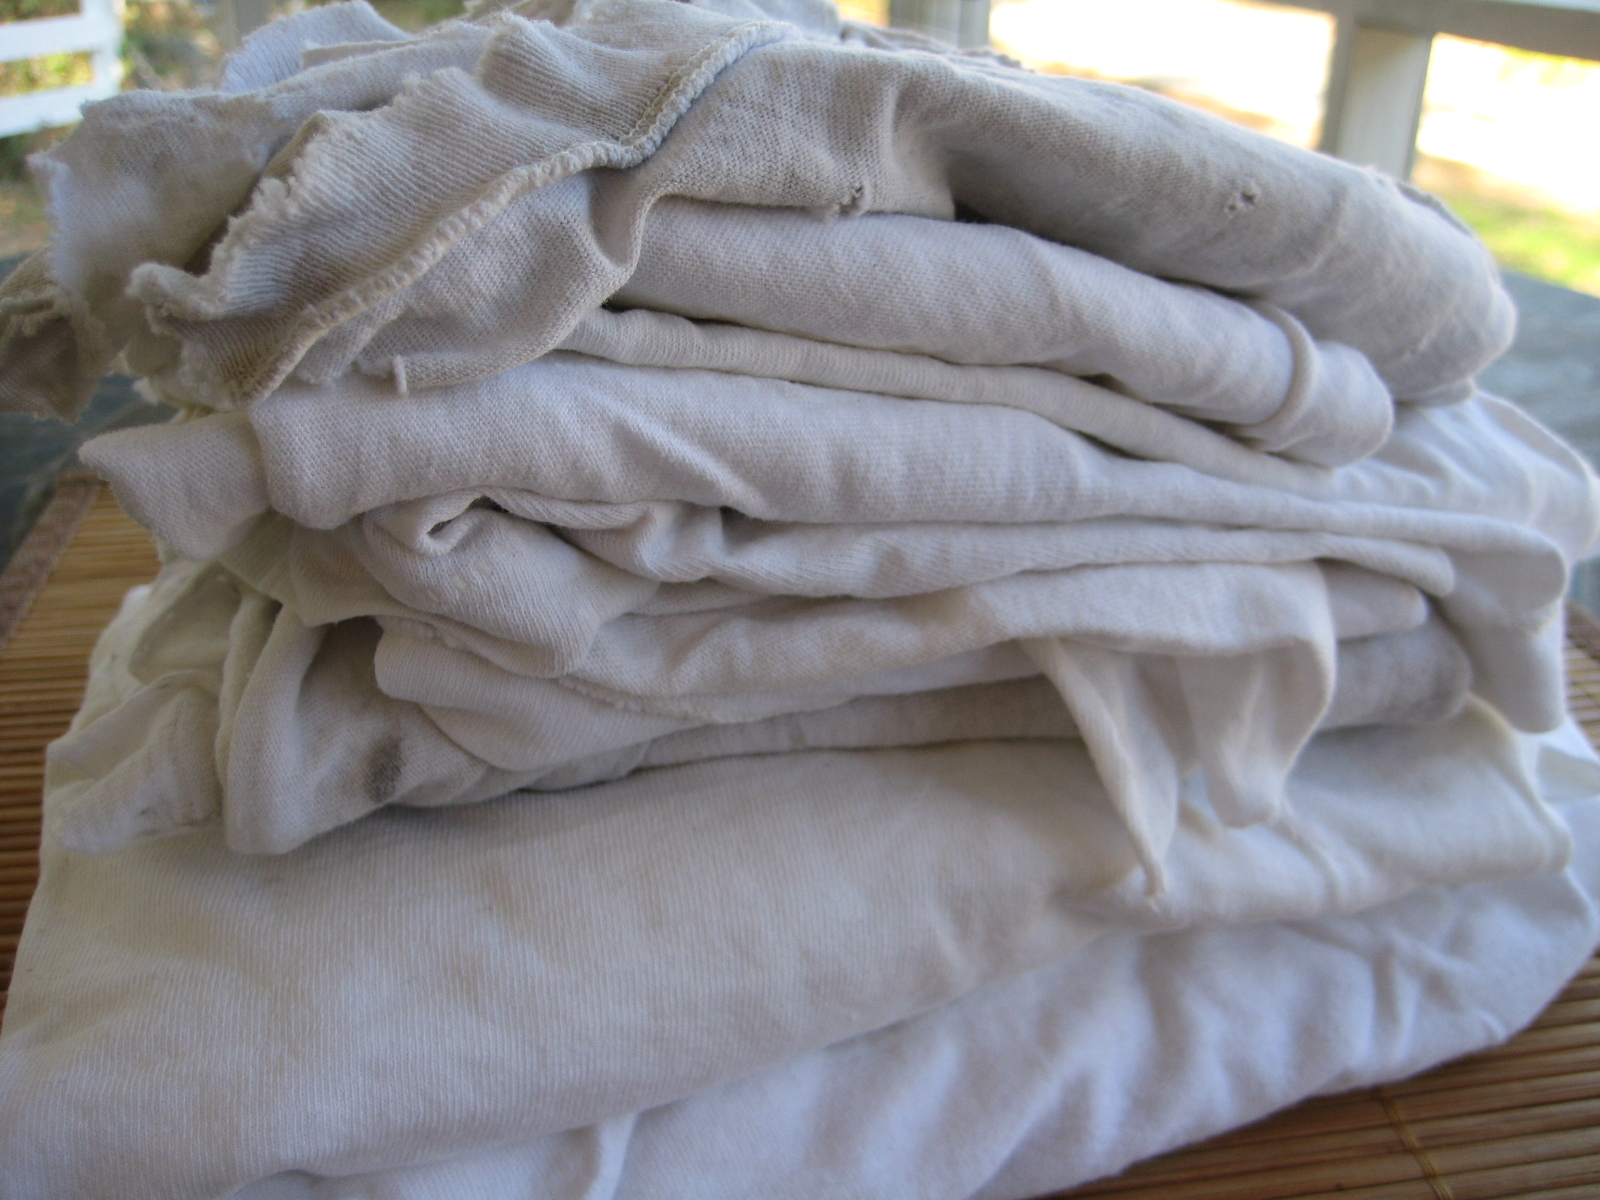 time-to-get-rid-of-those-ratty-old-towels-in-exchange-for-some-beautiful-and-thick-brand-new-buys